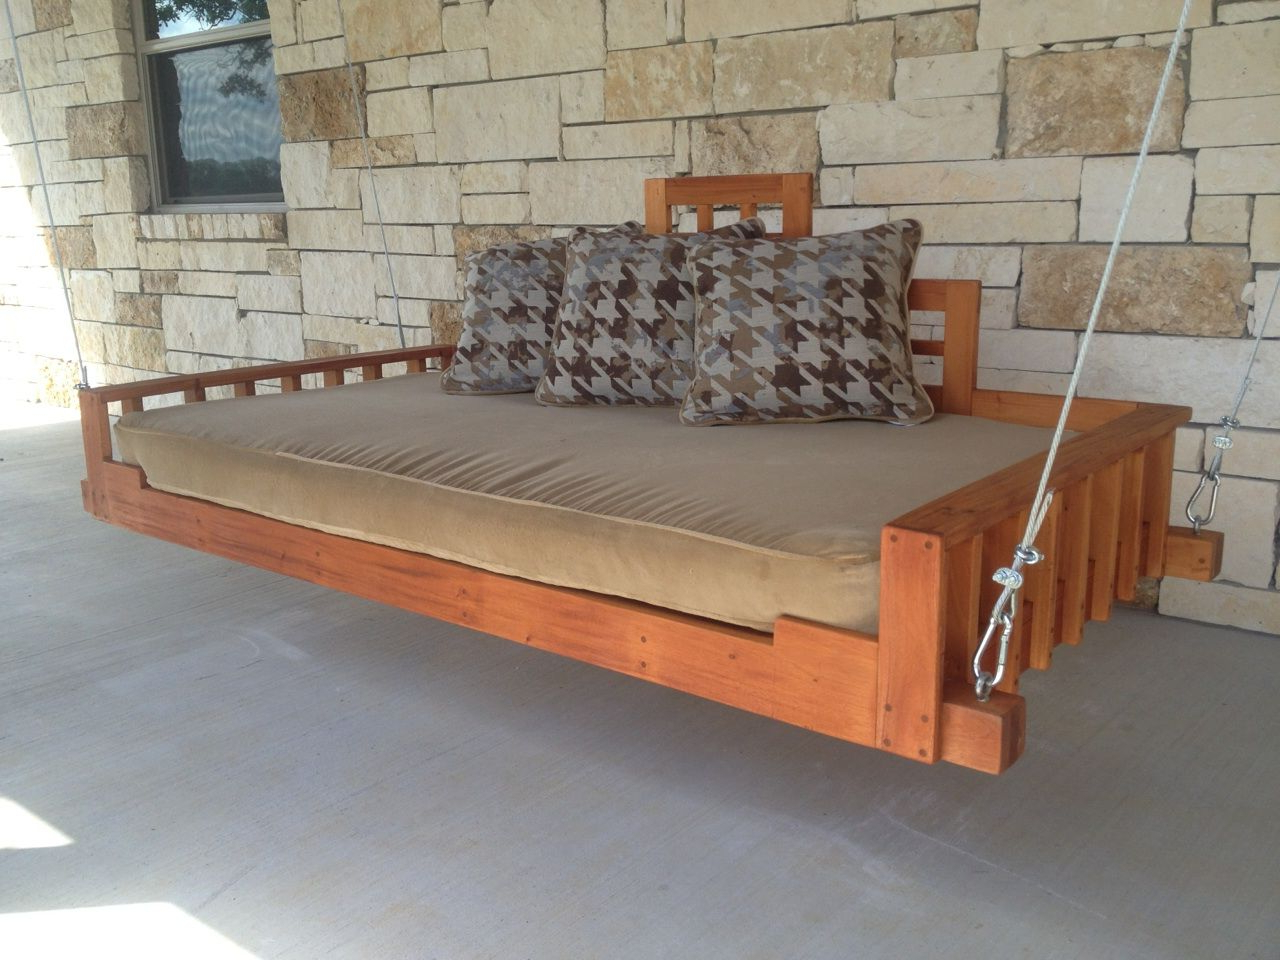 Lamp Outdoor Porch Swings Throughout 2019 Hand Made Outdoor Patio Swing Bed Or Hanging Day Bed (View 9 of 25)